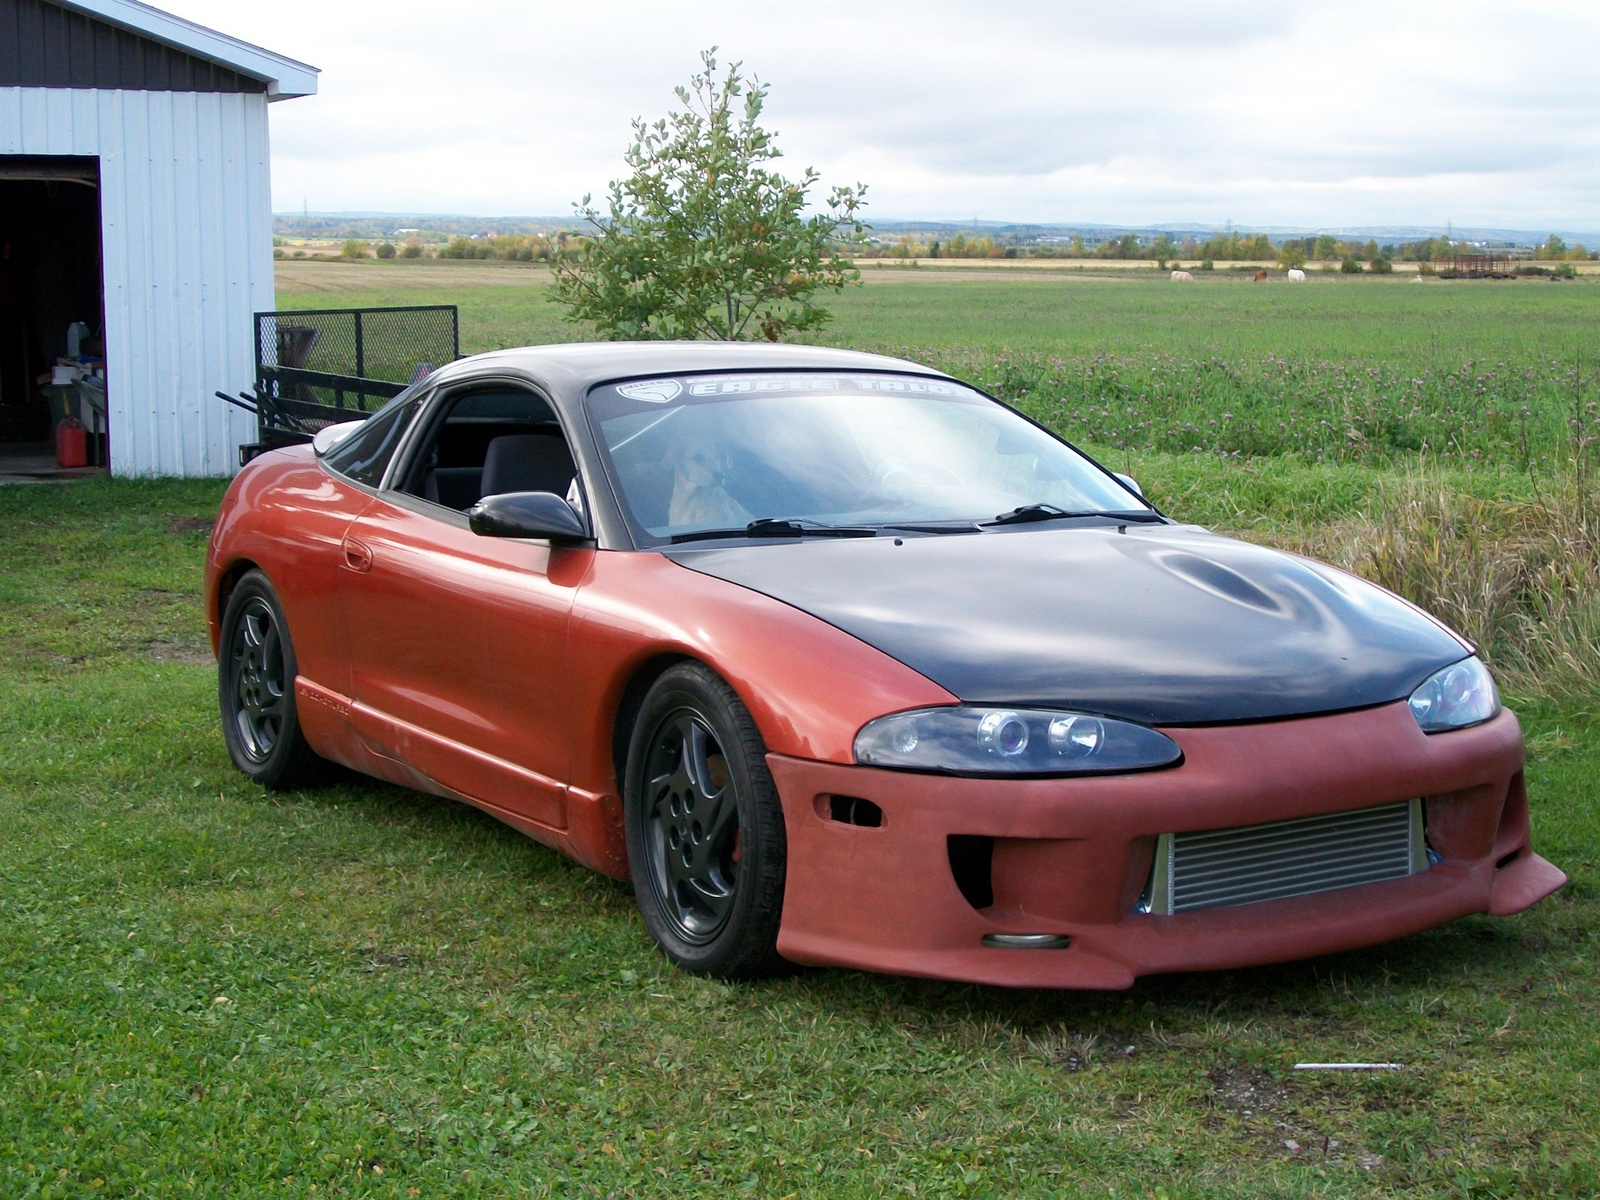 Eagle talon photo - 4